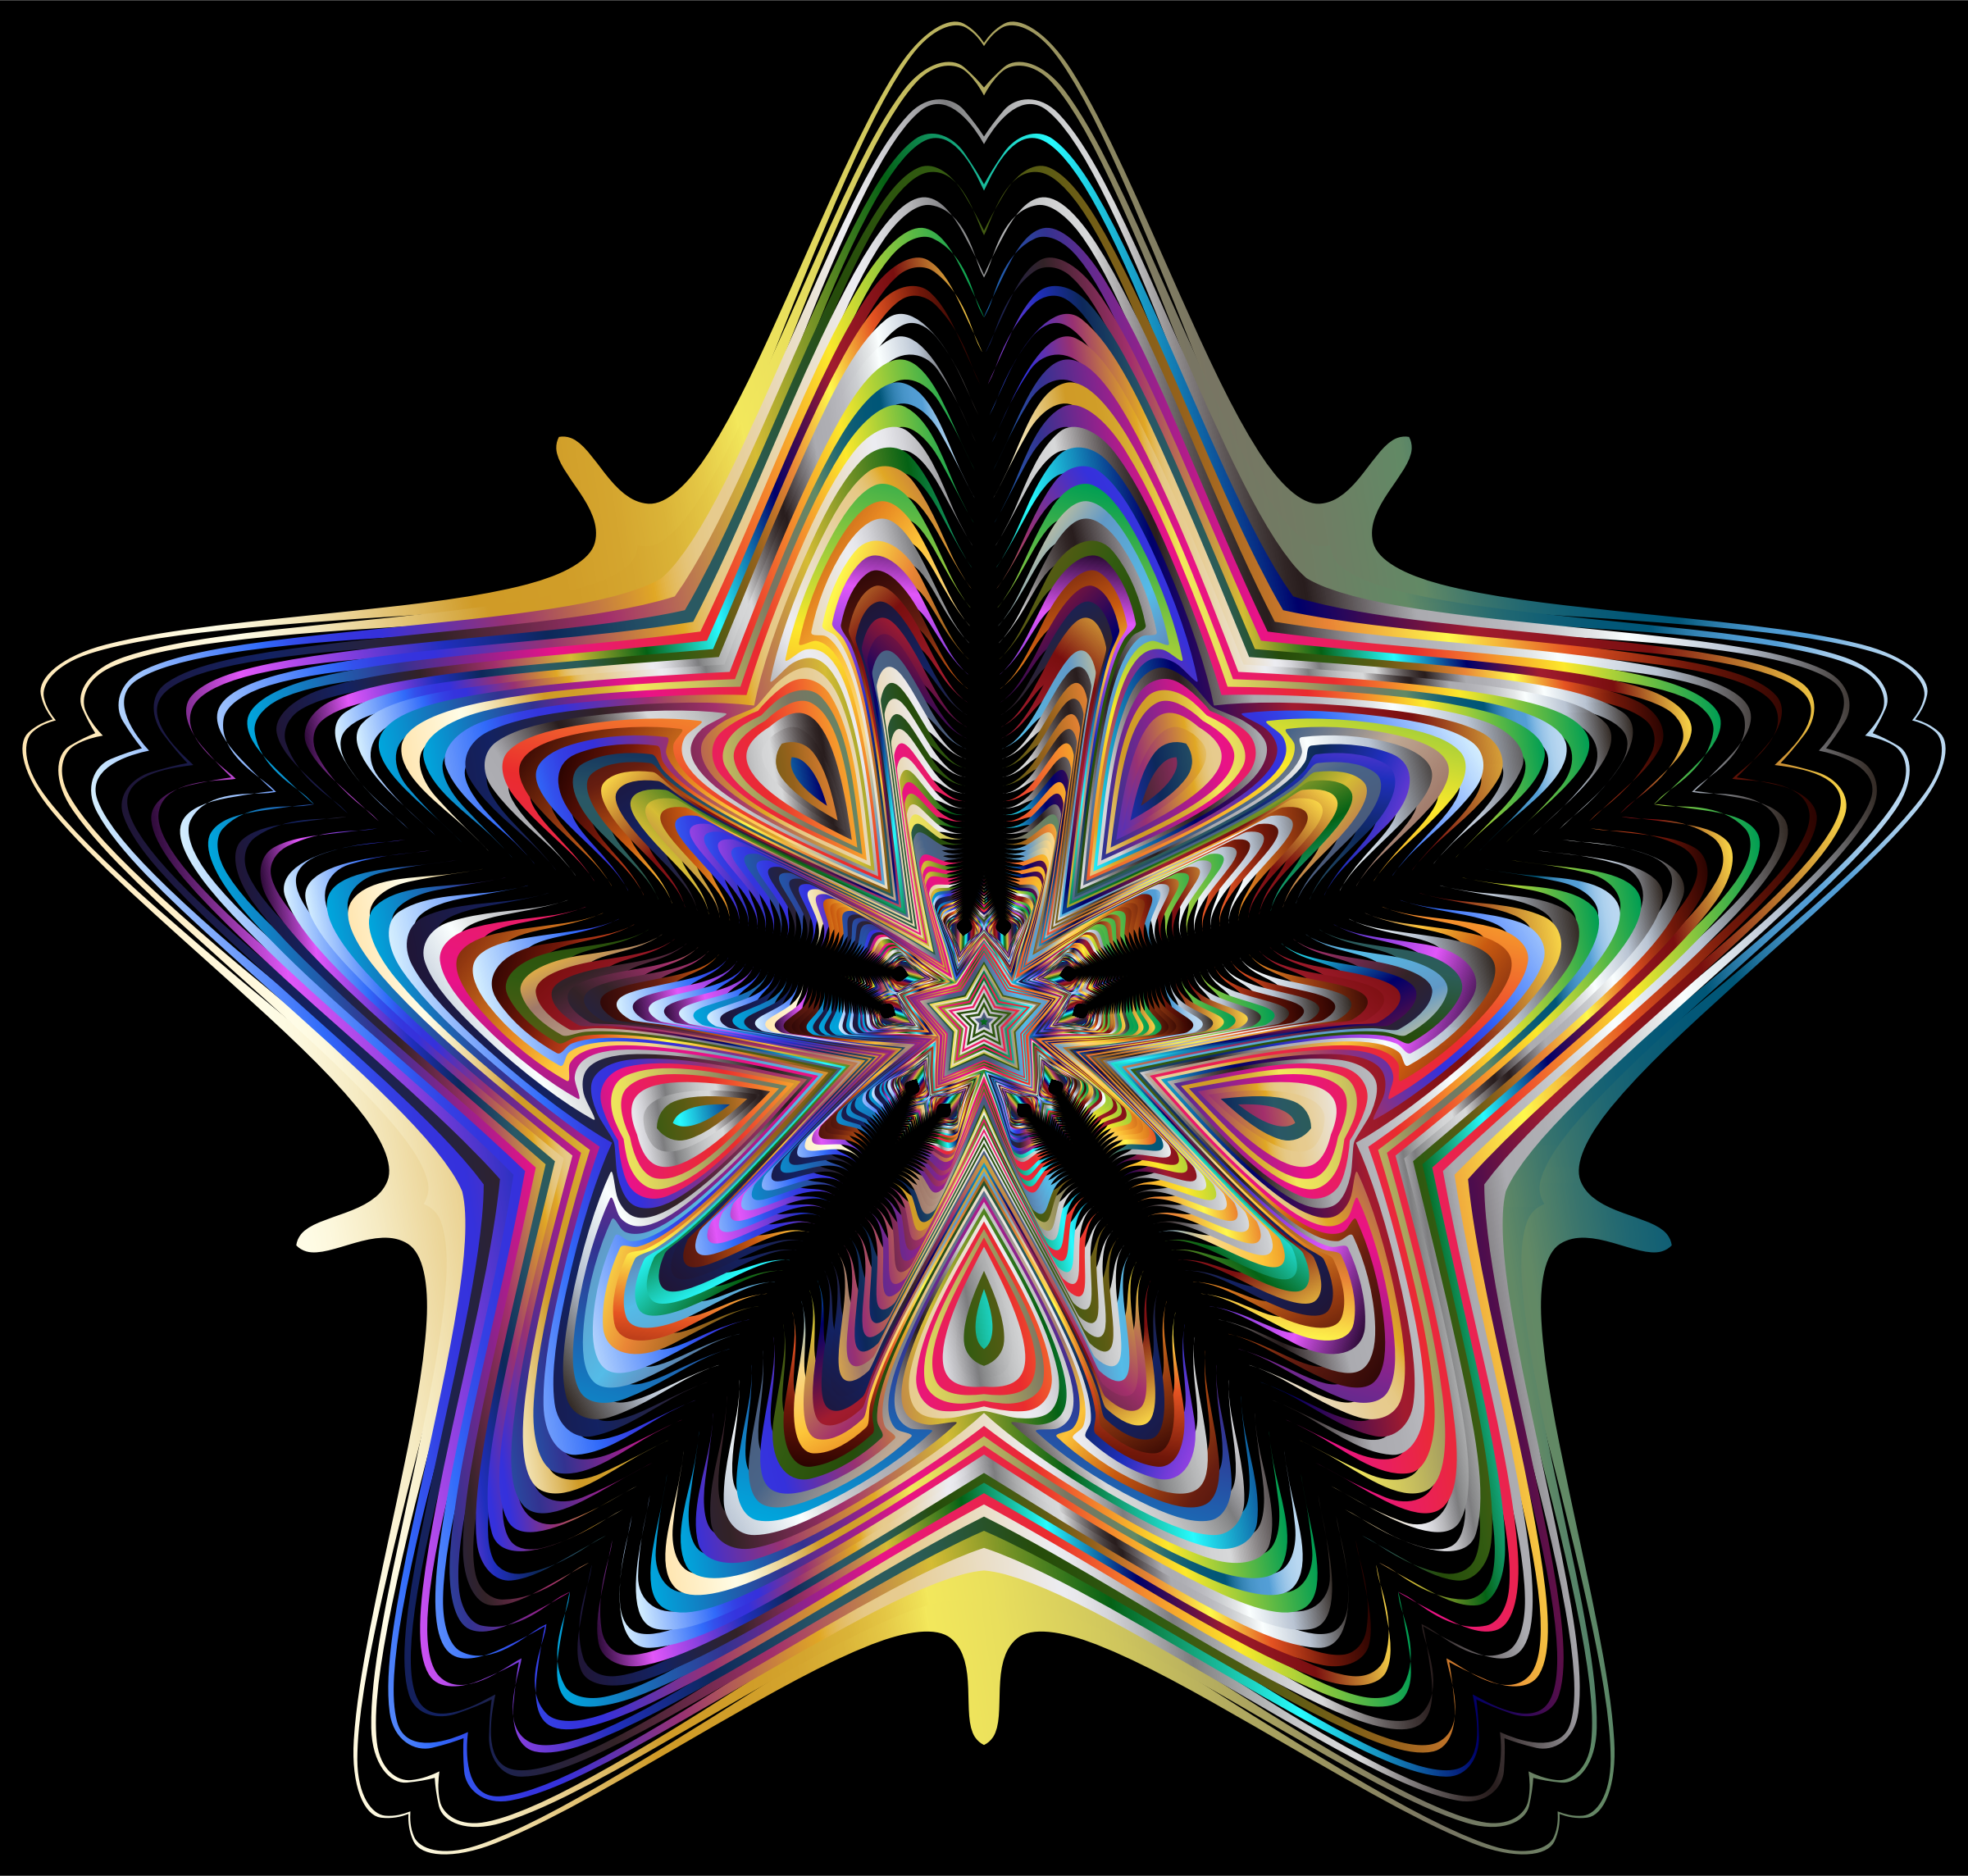 Prismatic Star Line Art 5 by GDJ